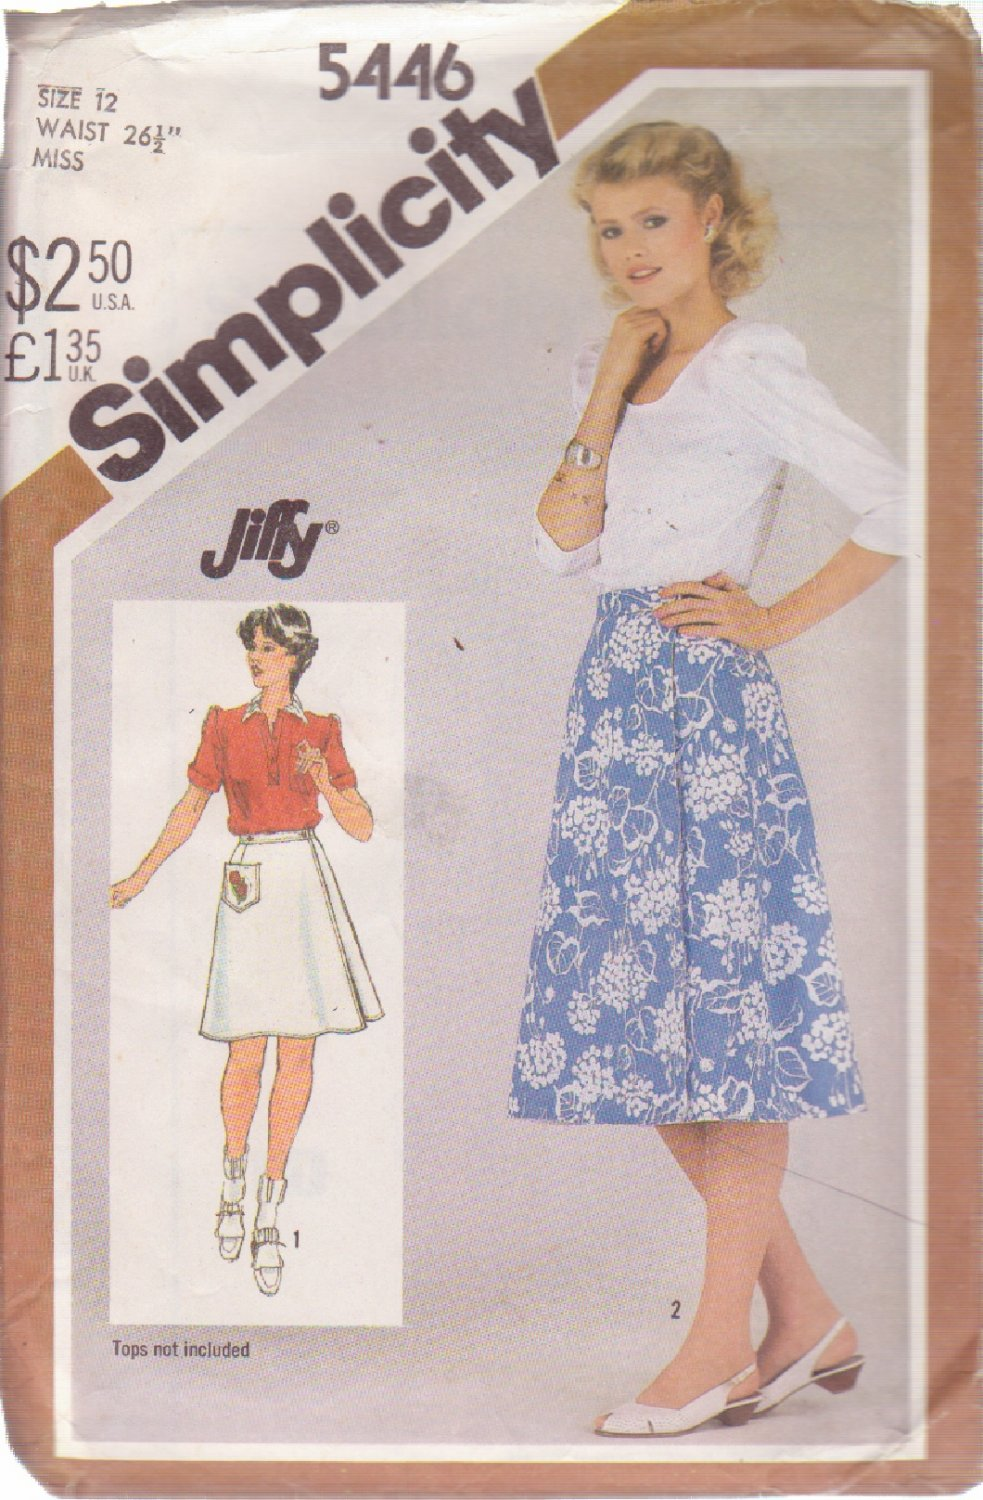 SIMPLICITY 5446 PATTERN MISSES' REVERSIBLE WRAP SKIRT SIZE 12